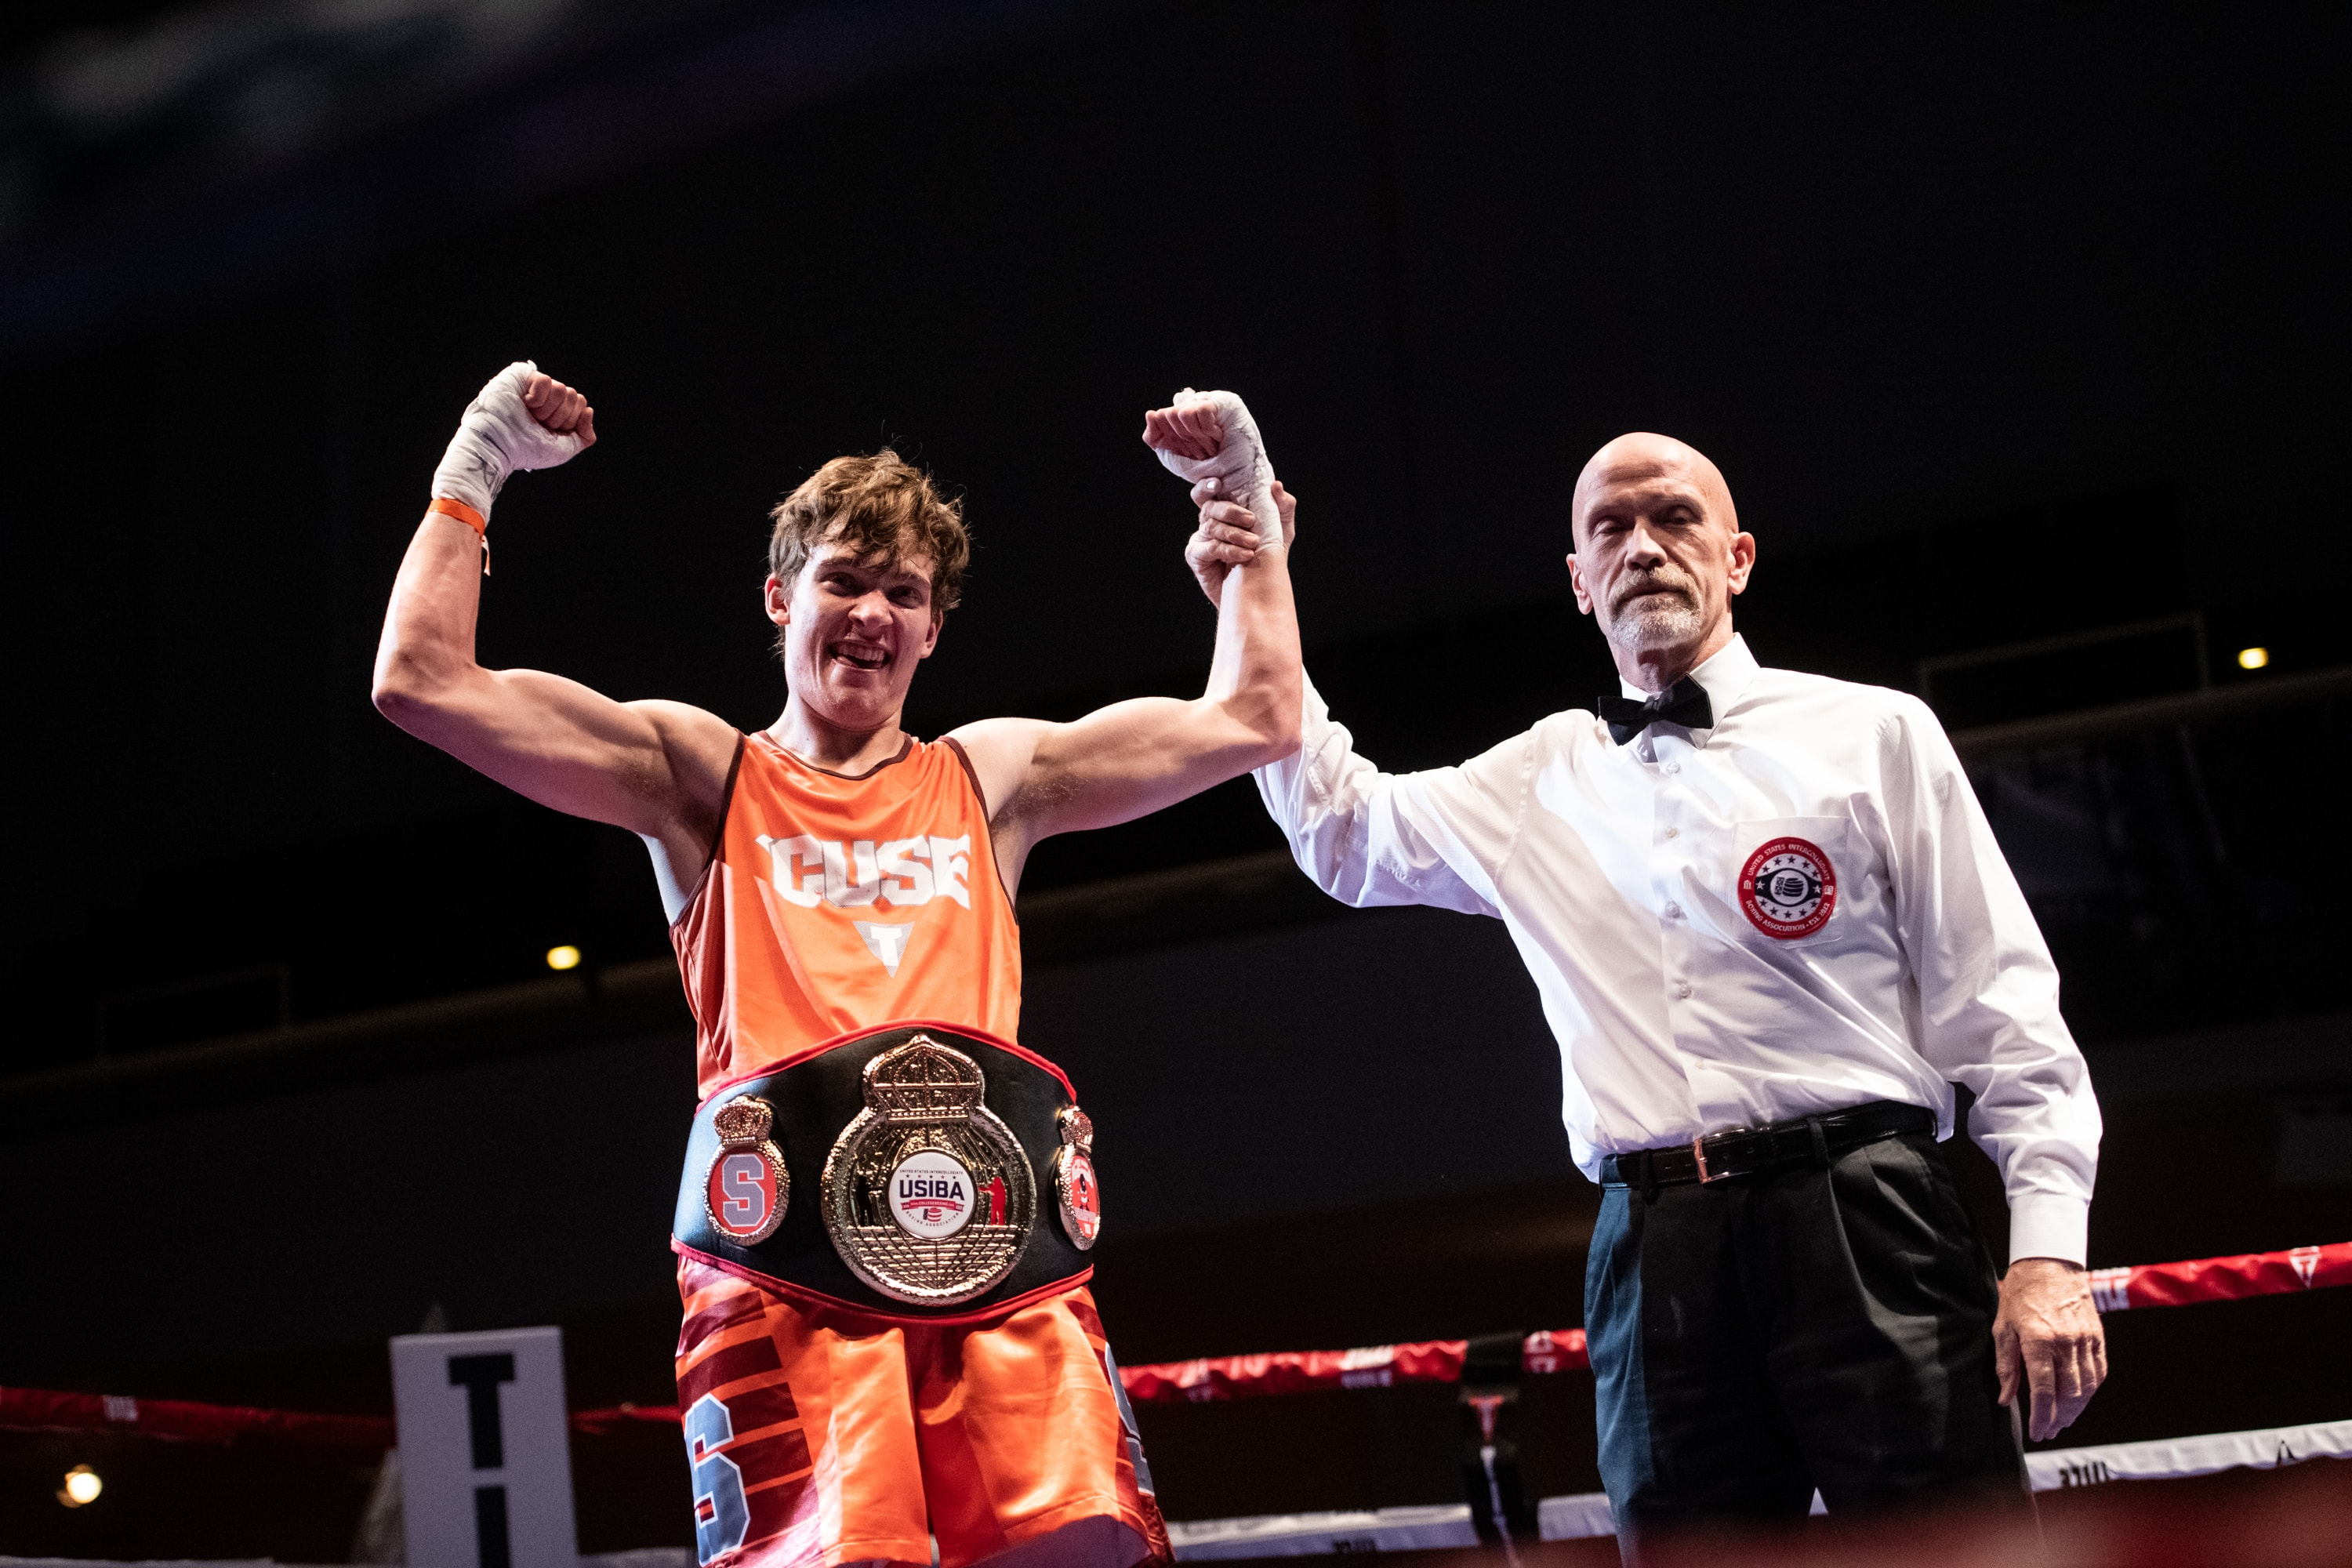 Syracuse graduate student Jeff Frelier is announced as the 178-pound champion during the national boxing tournament at Goldstein Auditorium on March 24, 2019. Syracuse University hosted the United States Intercollegiate Boxing Association's national tournament this past weekend.